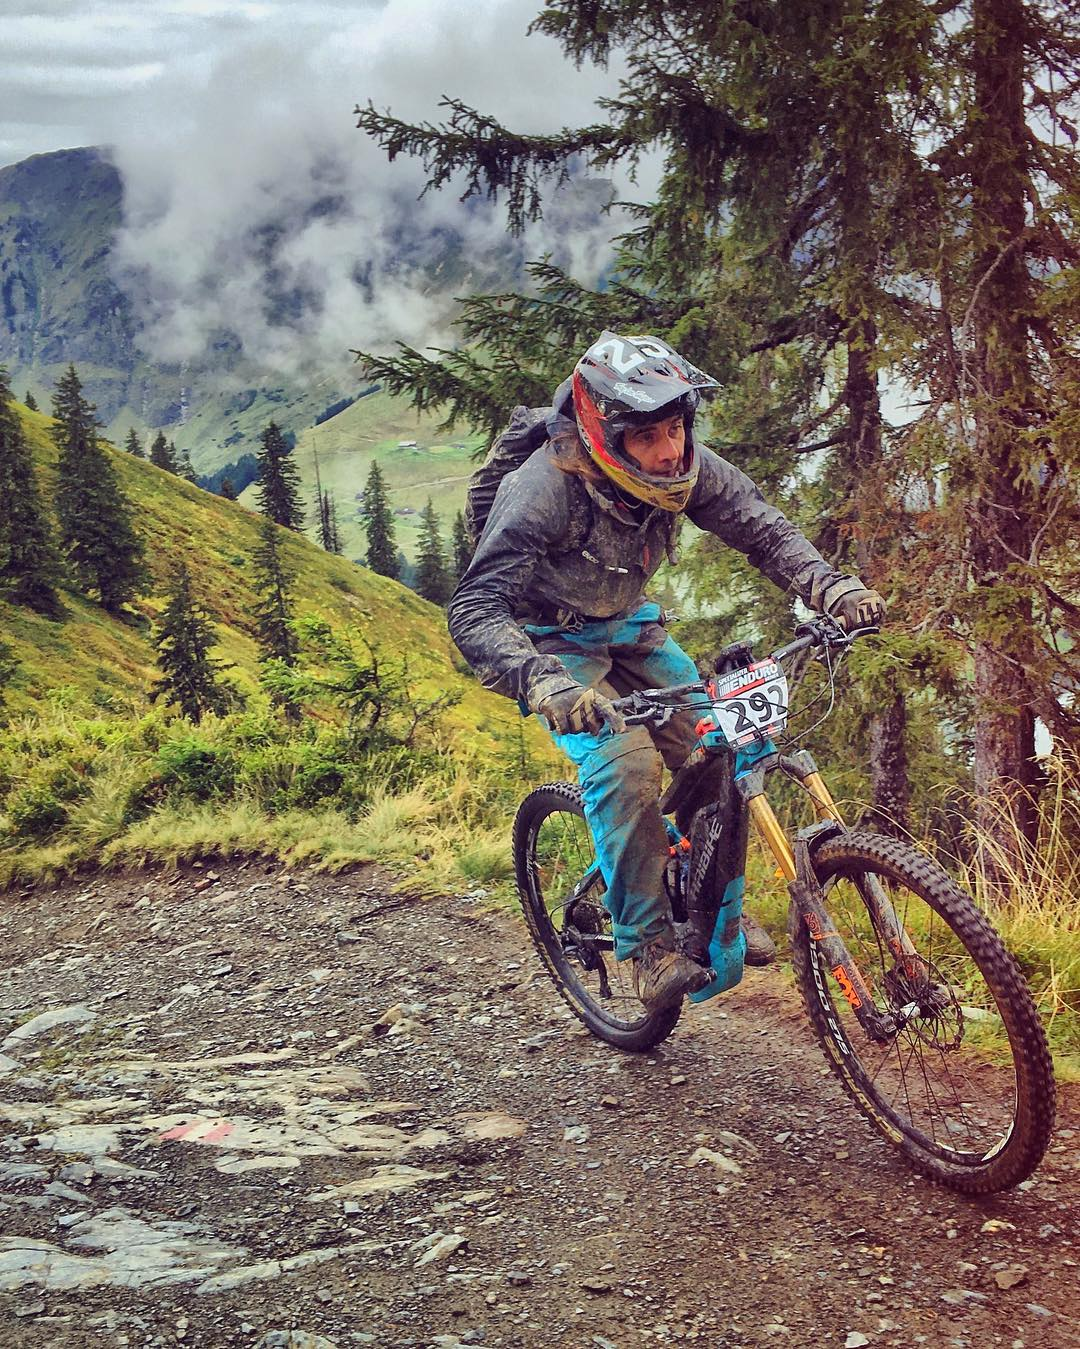 @benna292 working hard for that silver medal. Nothing worthwhile is every really that easy. #xduro #haibike #emtb #mtb